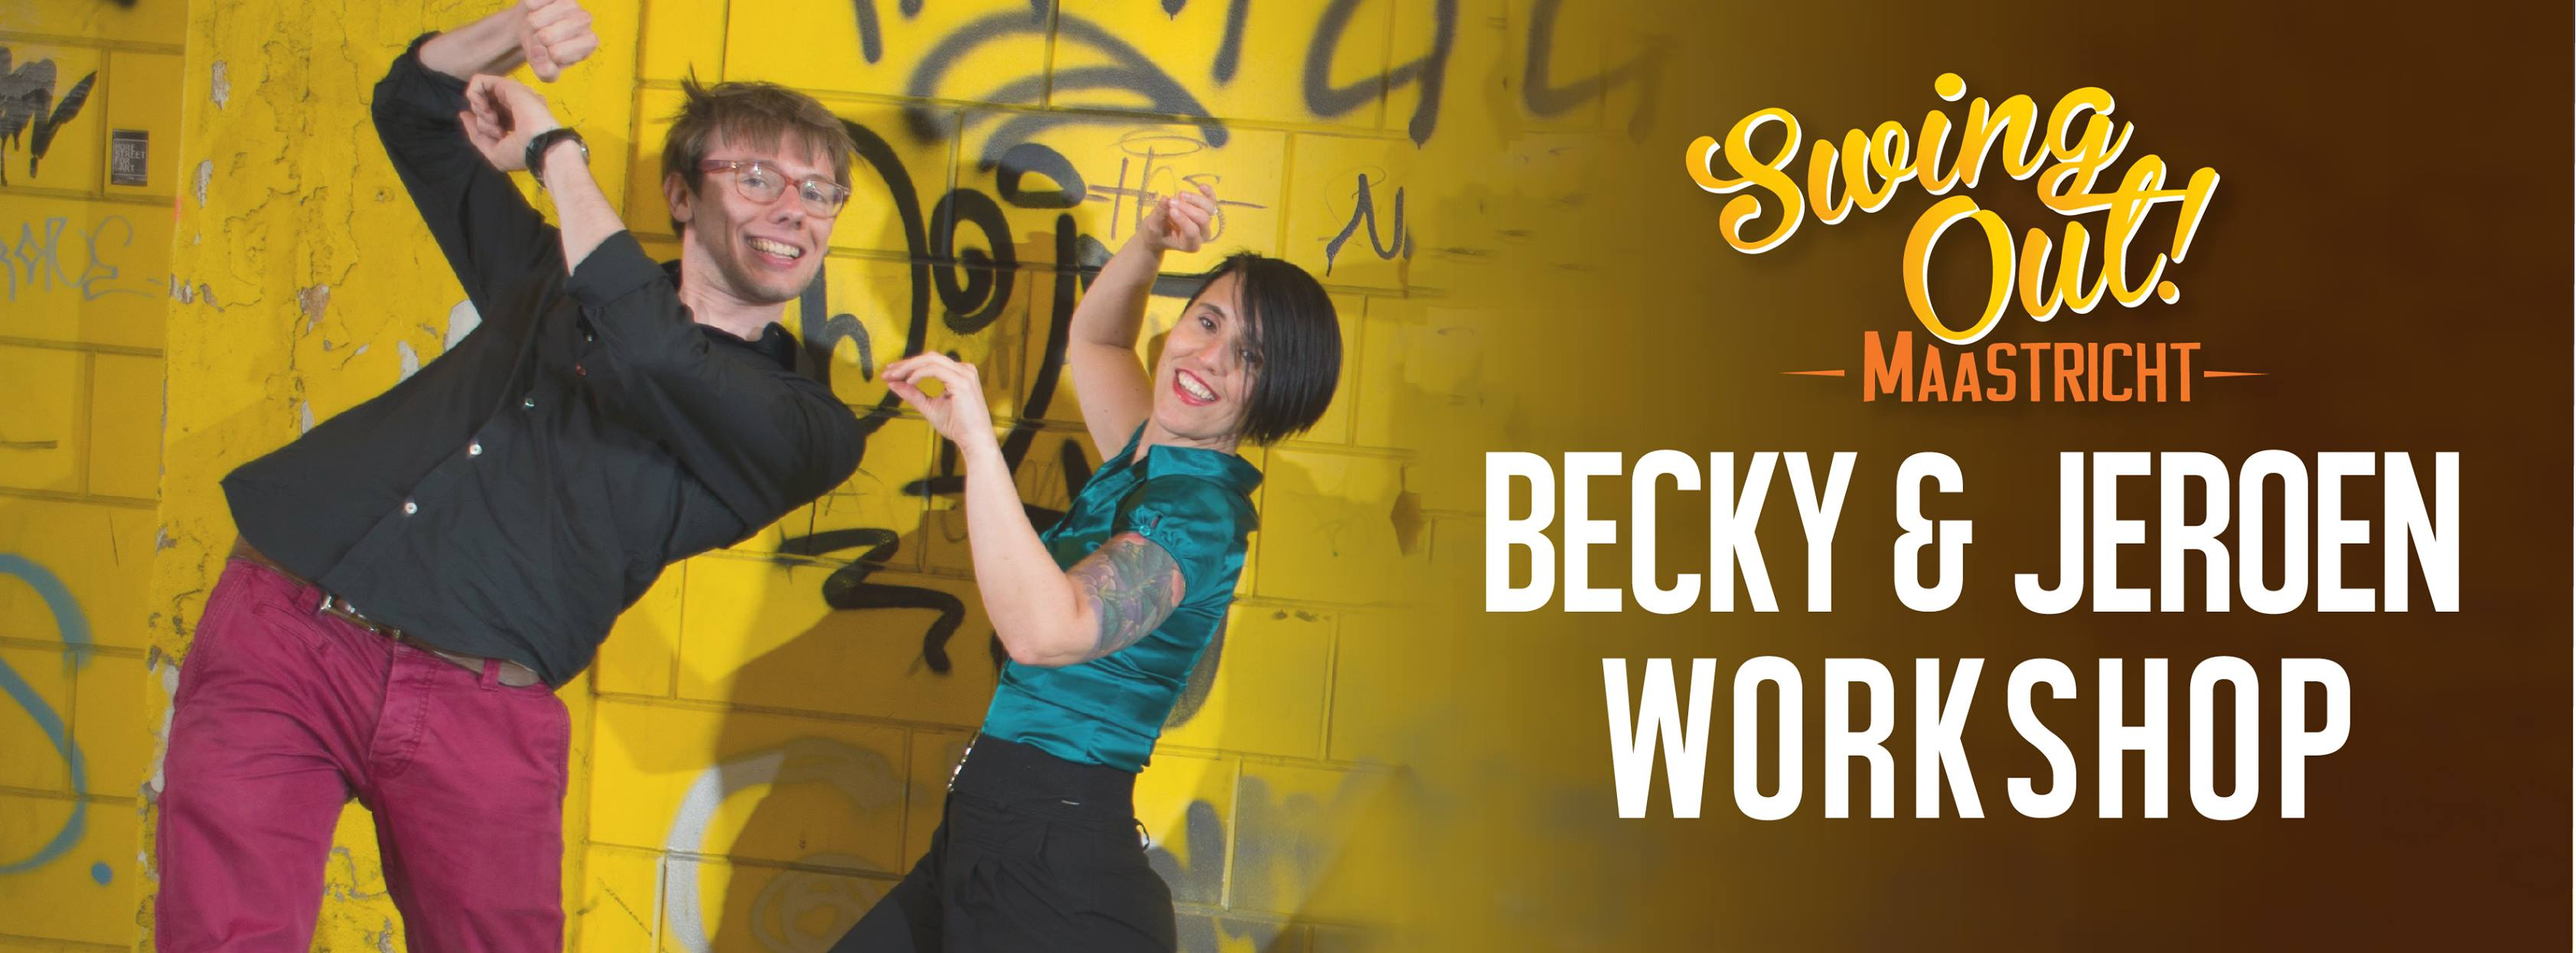 becky-jeroen-workshop-header